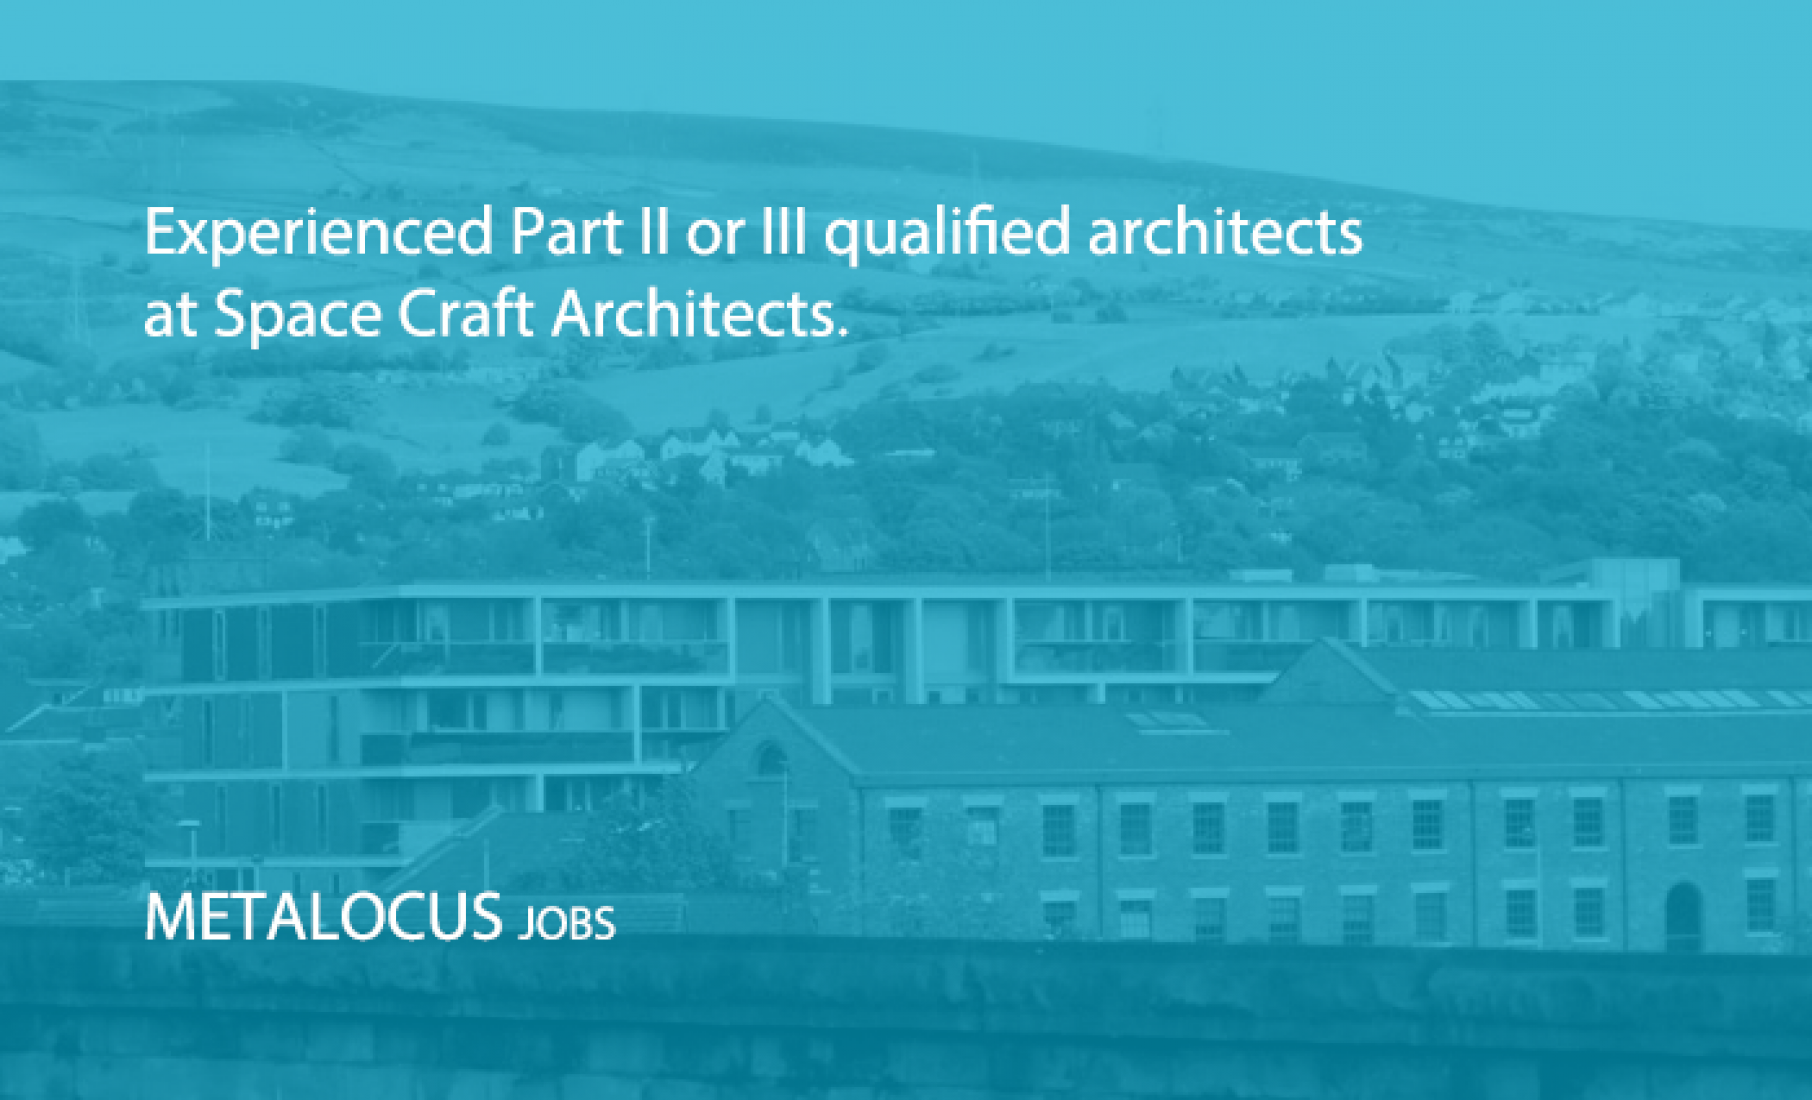 Experienced Part II or III qualified architects at Space Craft Architects